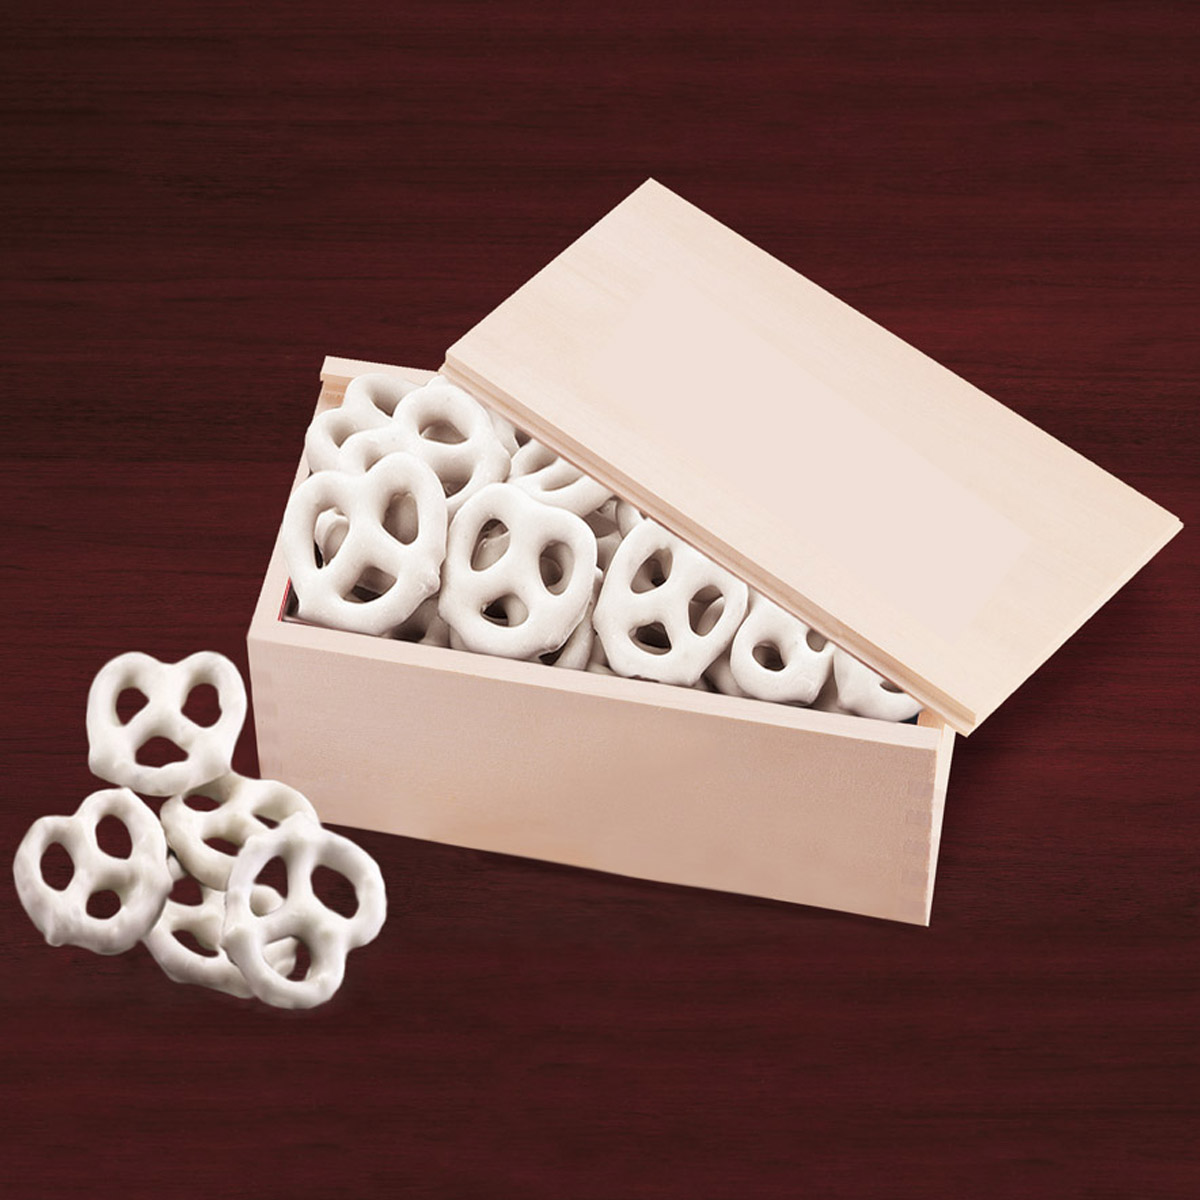 Wood Frosted Pretzels in Wooden Collector's Box